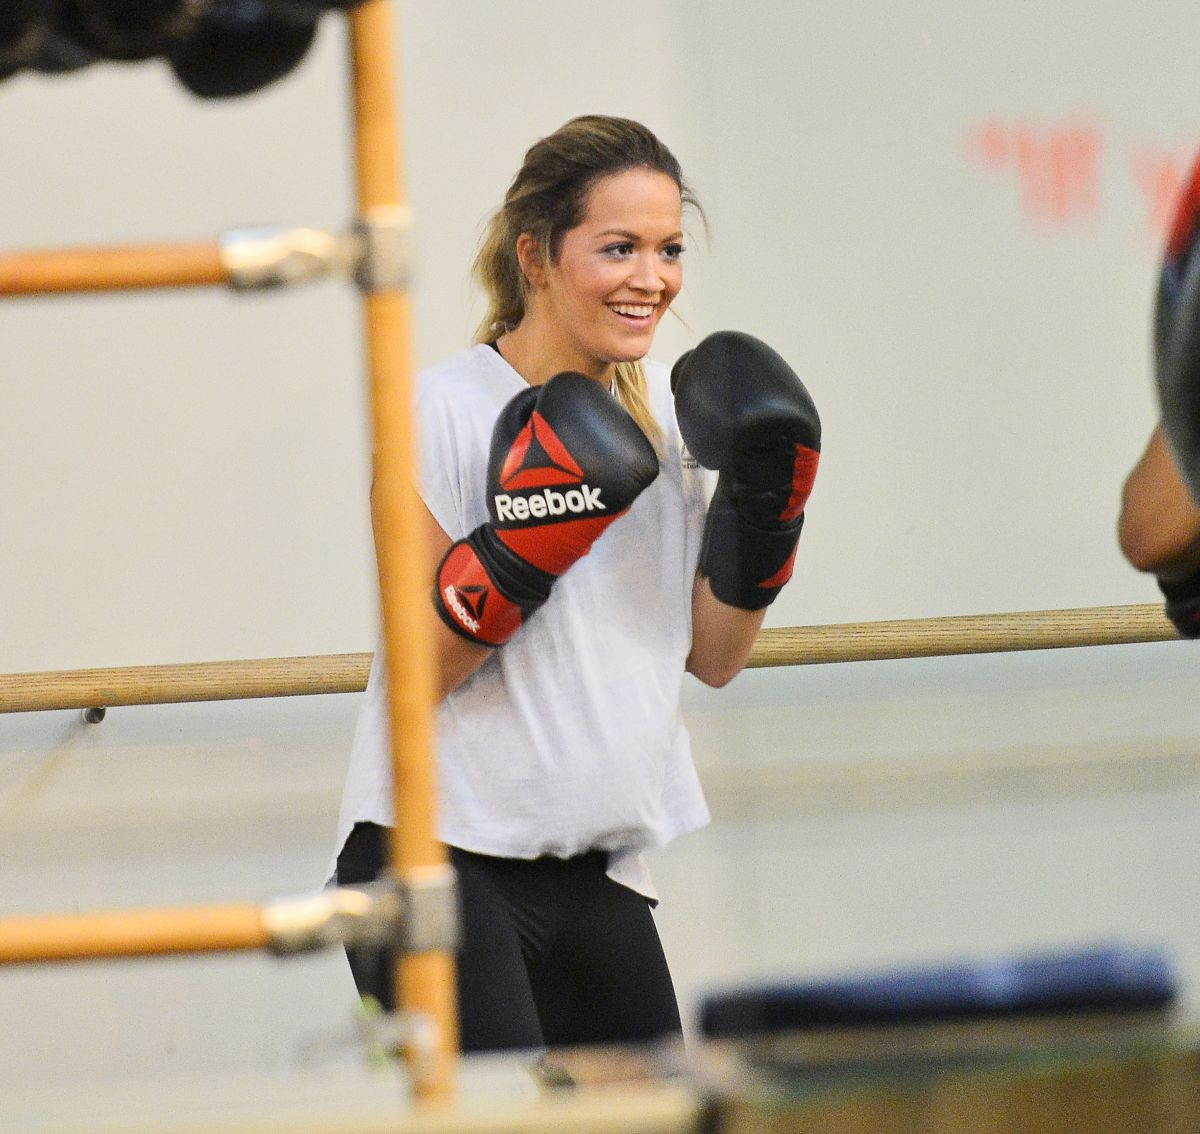 Working Out: Rita Ora Working Out At Gotham Gym In NYC